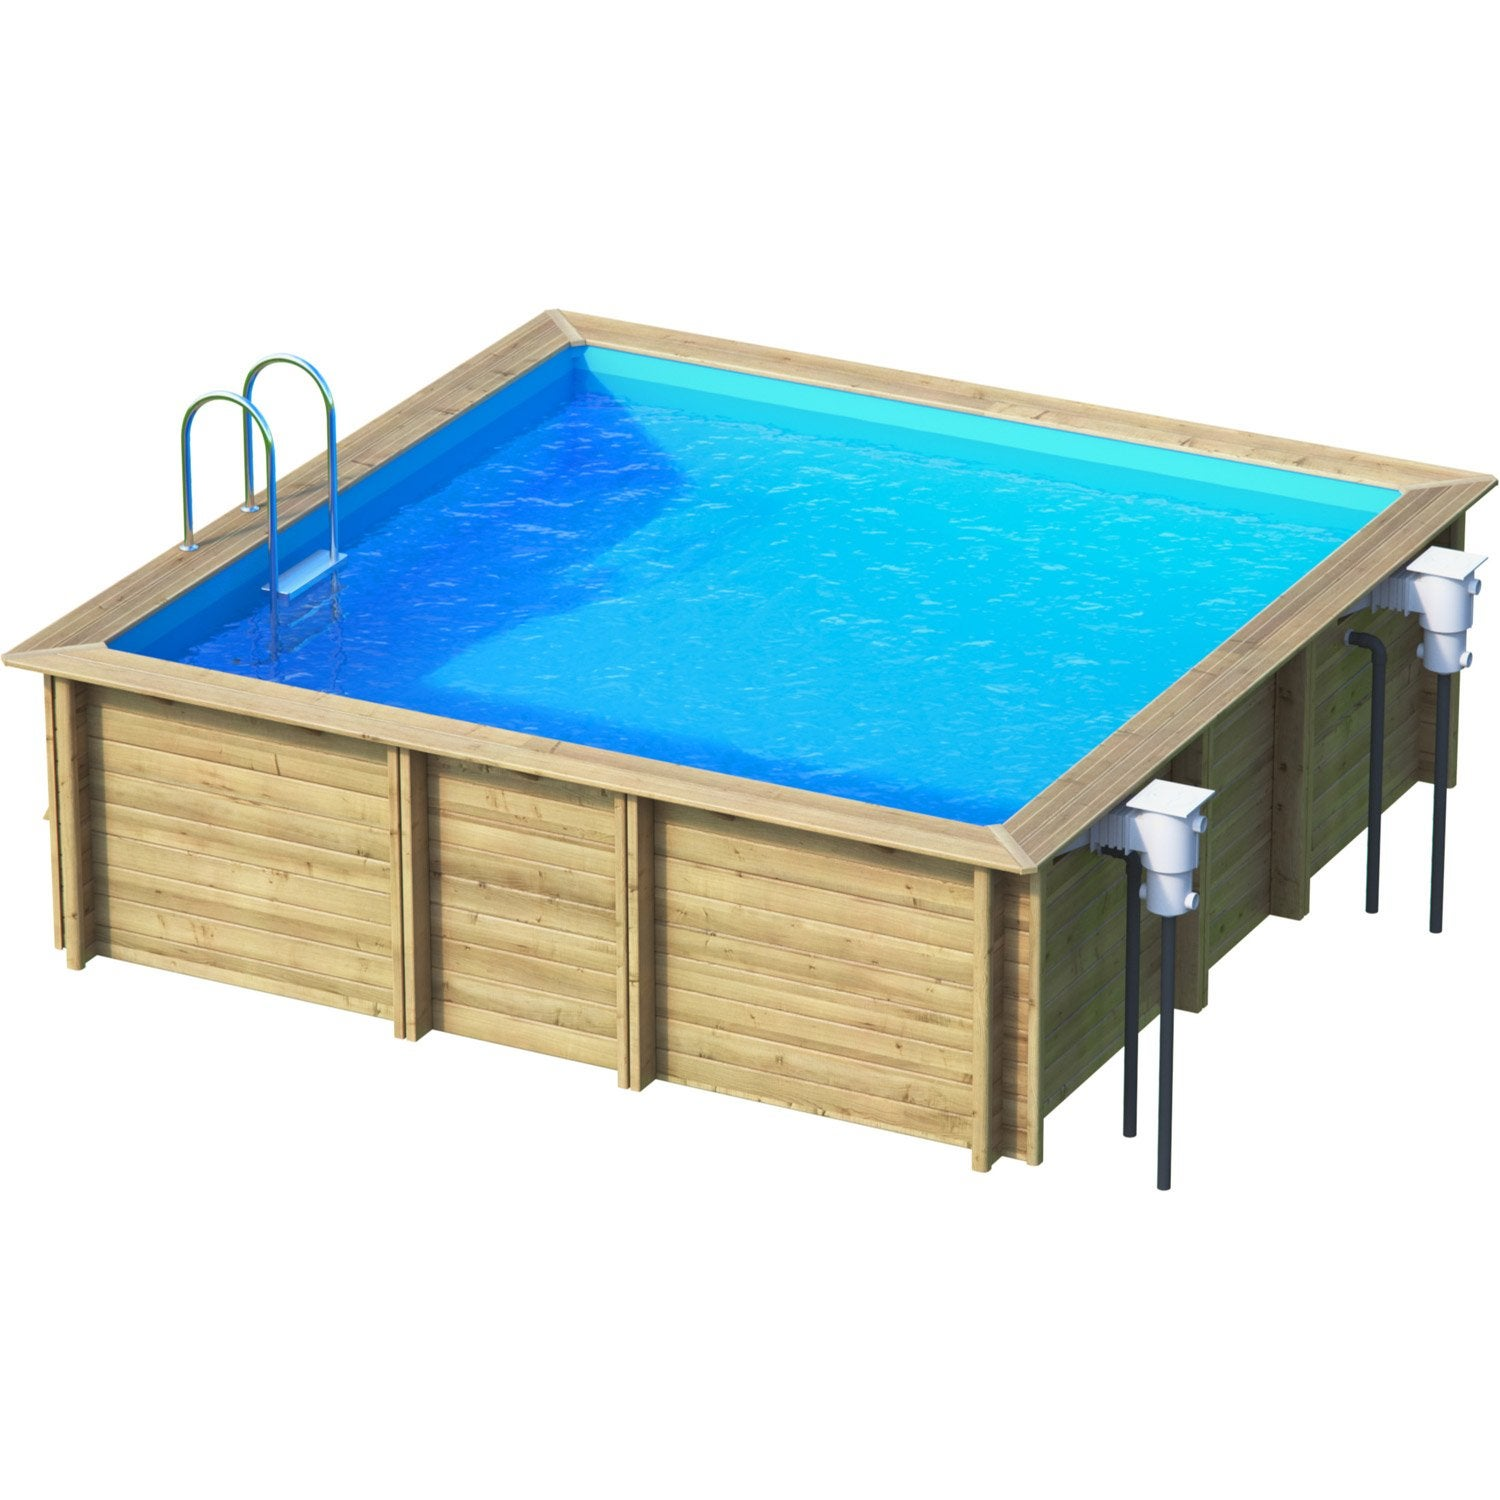 Piscine bois weva leroy merlin for Leroy merlin piscine bois